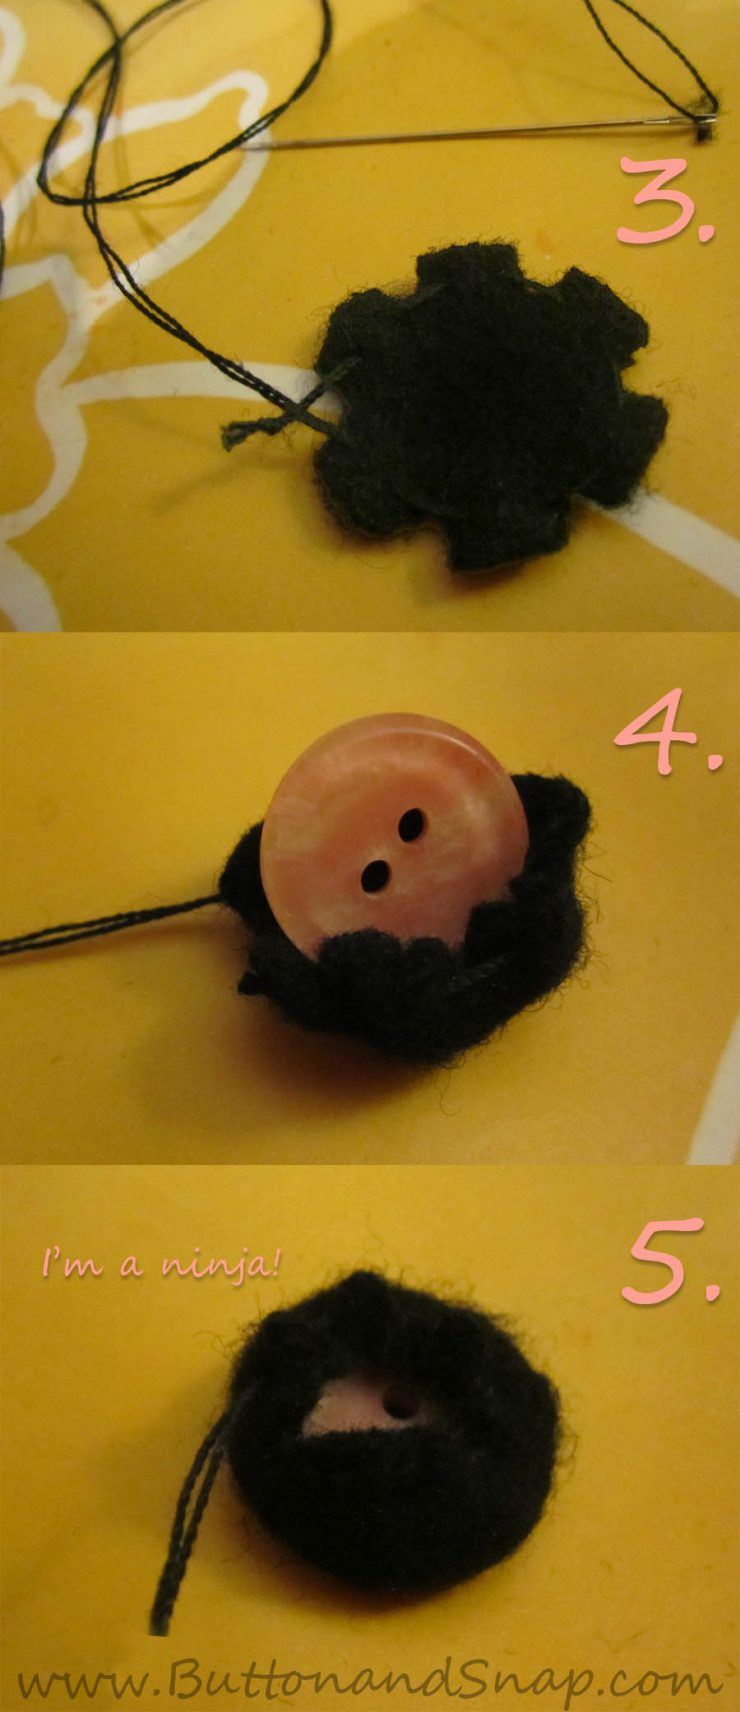 Recycling old buttons by hand-covering them in wool felt